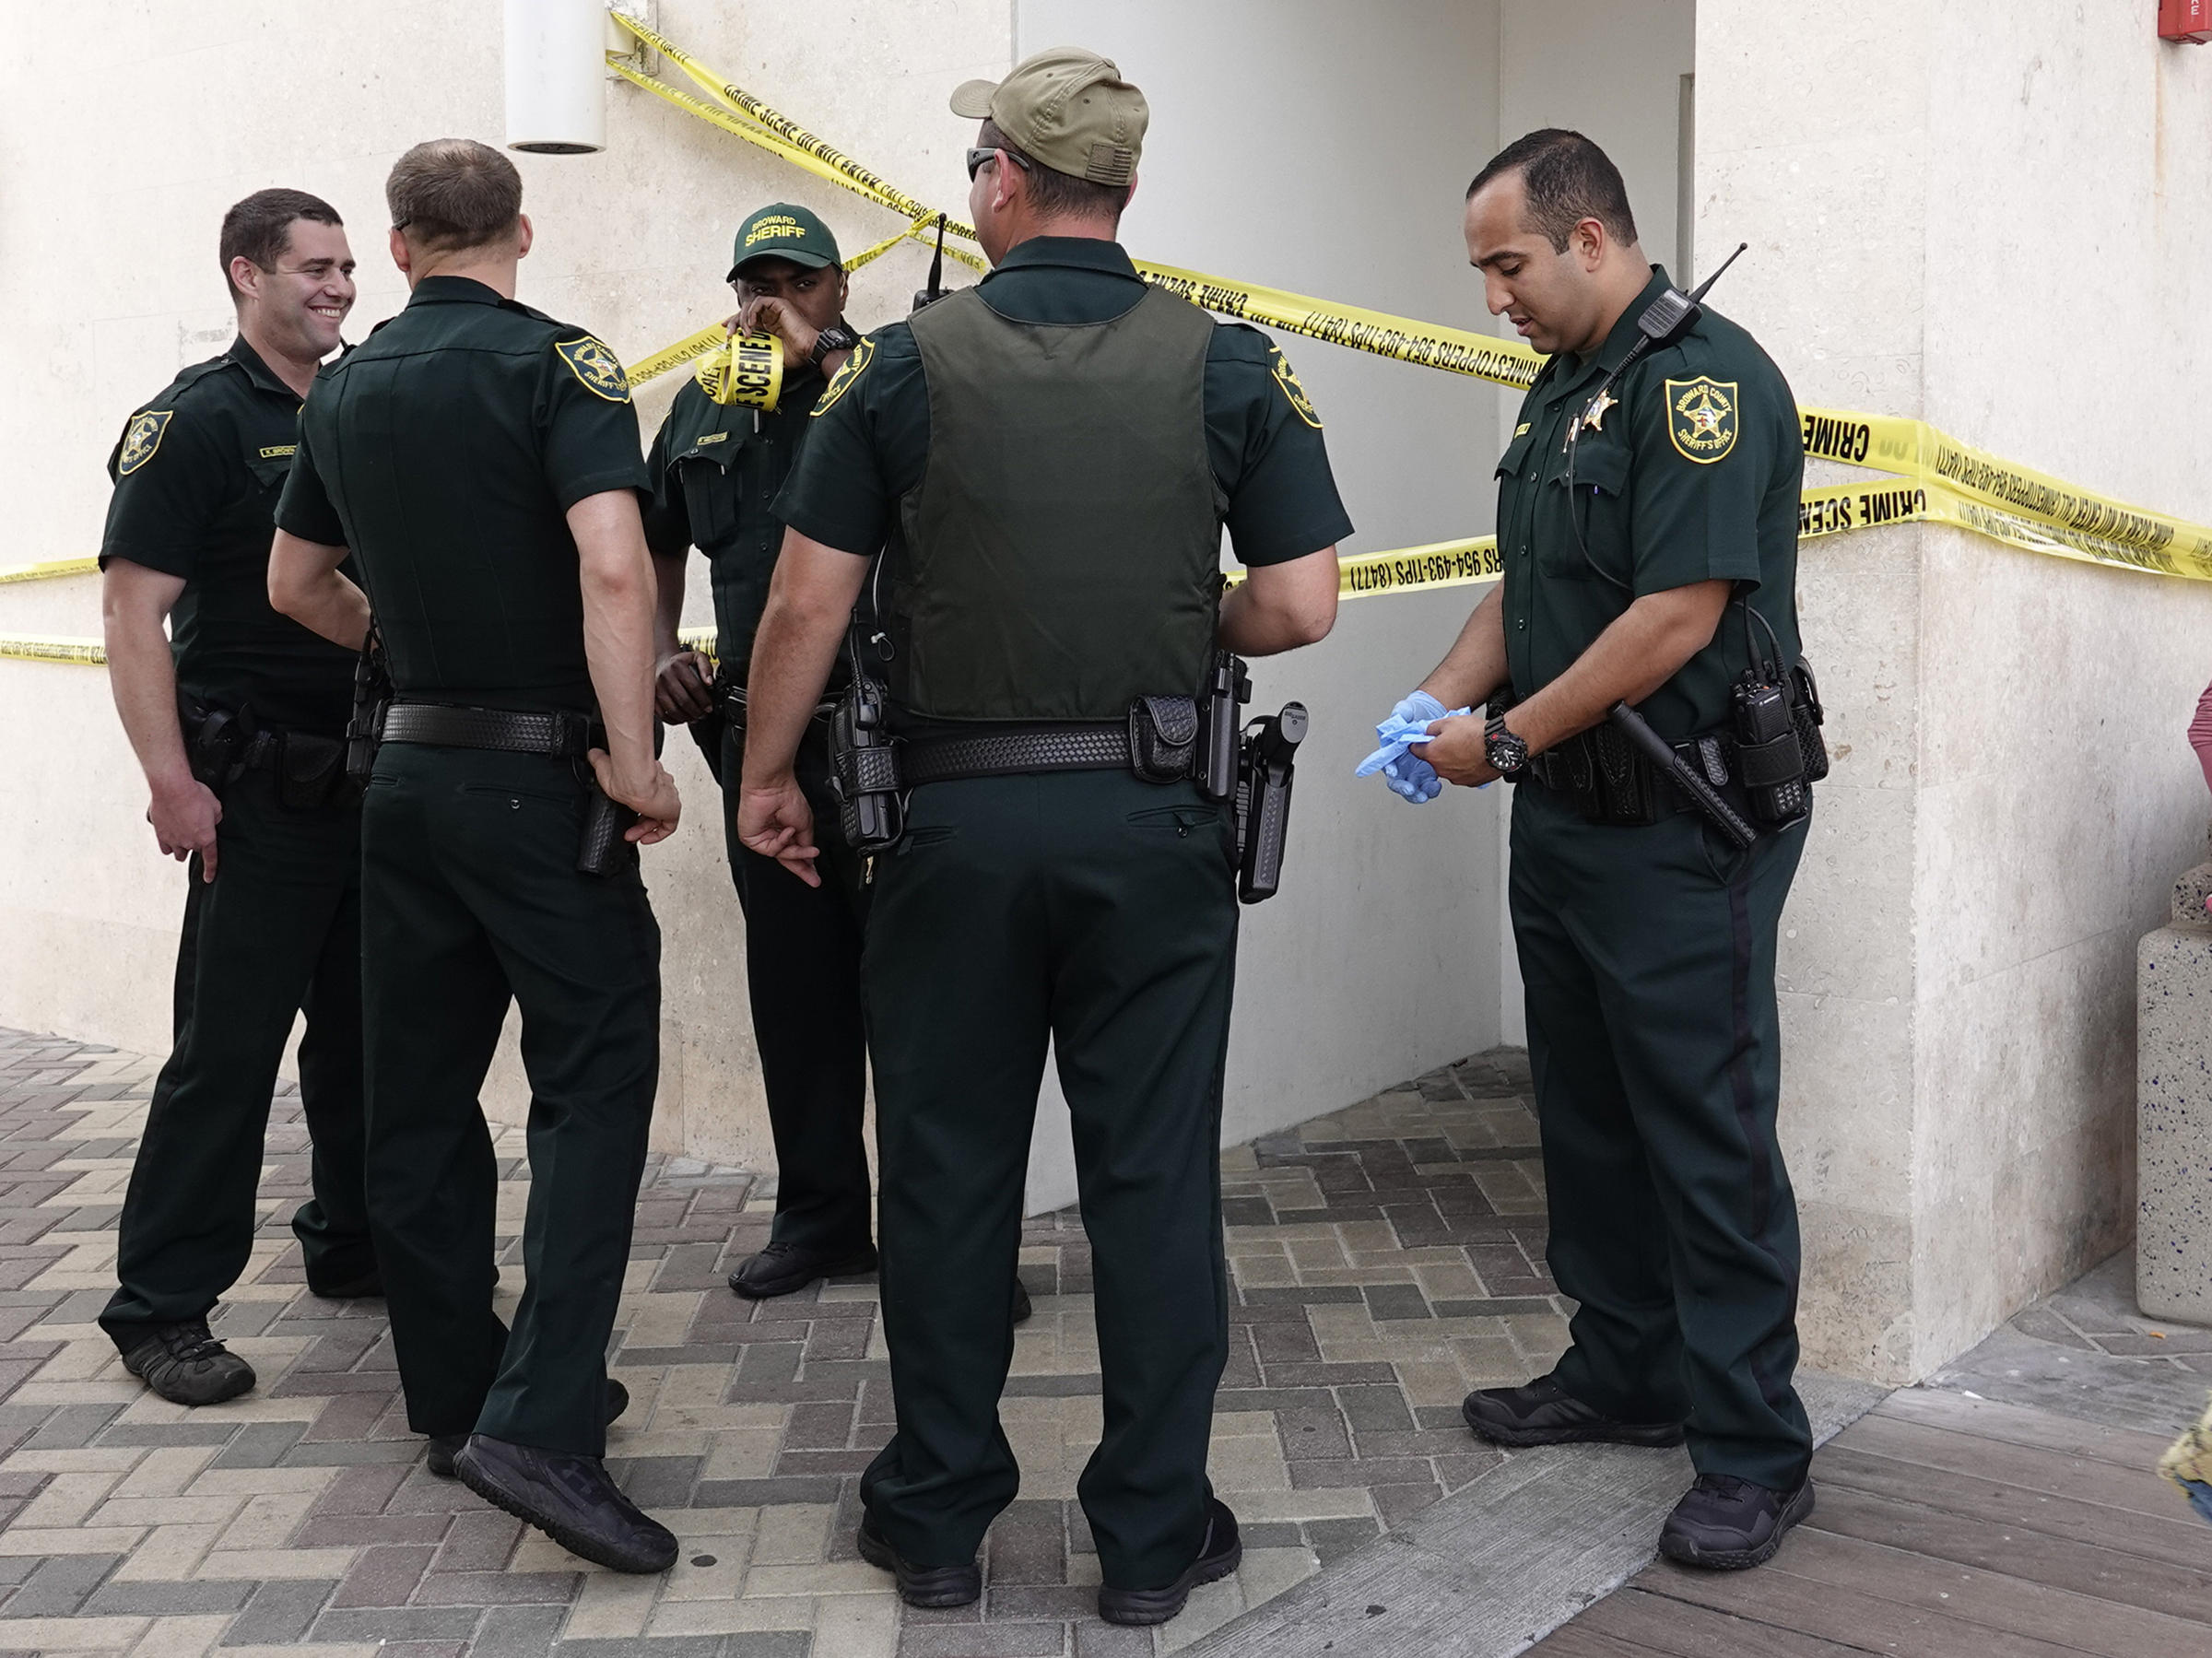 broward sheriff deputies surround the mens bathroom at the deerfield beach fishing pier on sunday